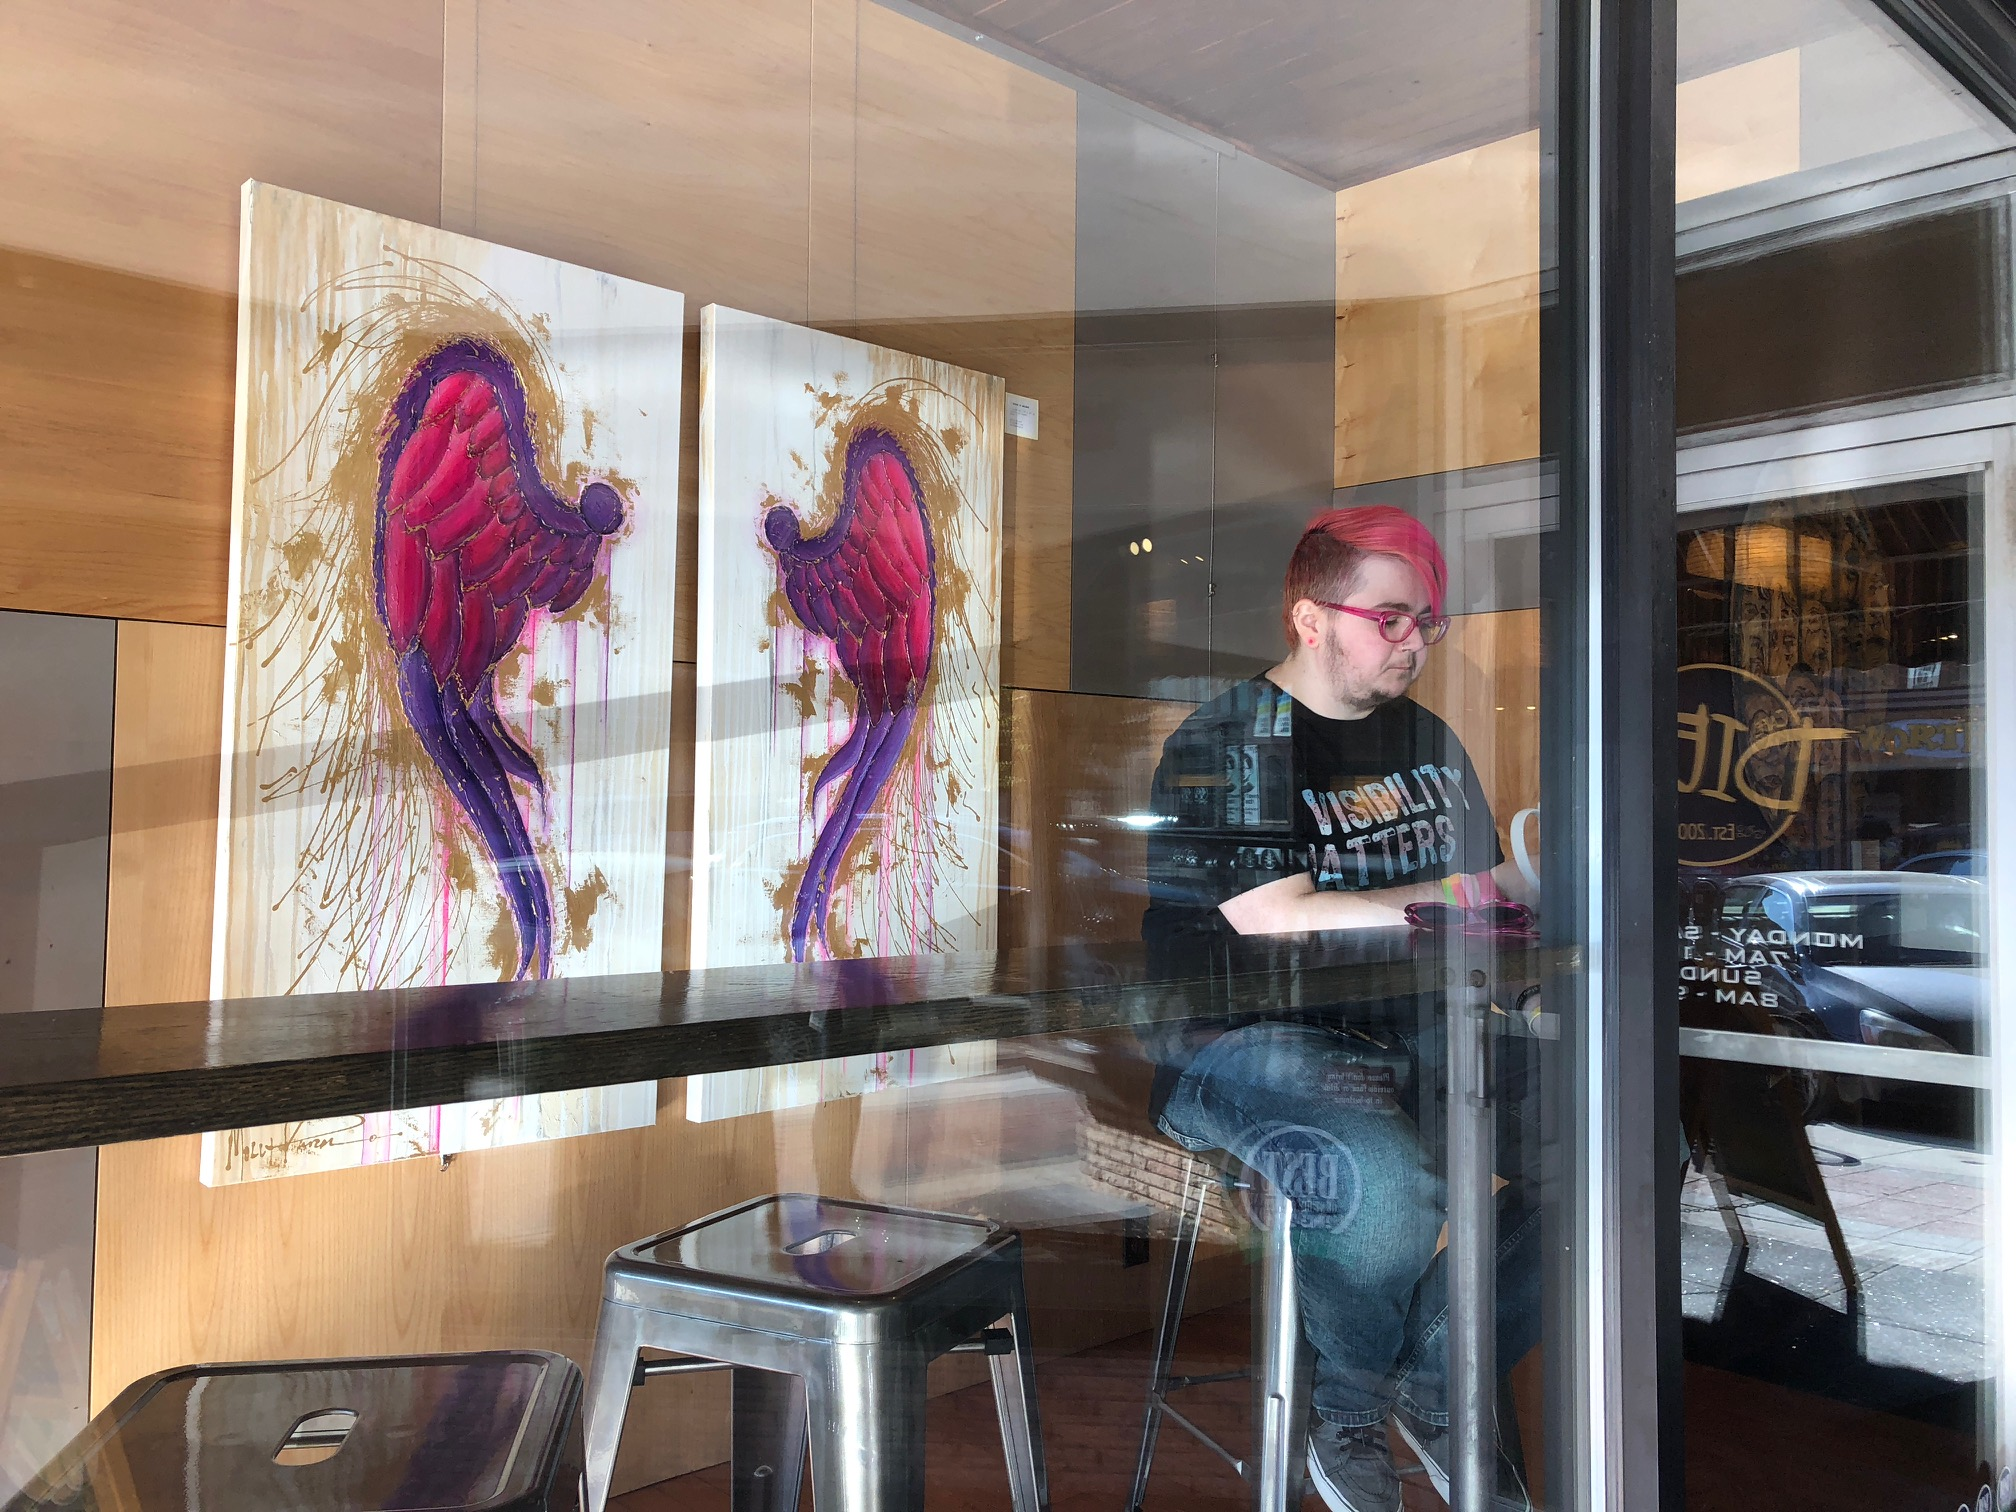 LGBTQ advocate Freddi Funnell sits at a cafe in Ames, Iowa, Oct. 27, 2018. He started a support group last year for people in central Iowa who identify as transgender or non-binary.